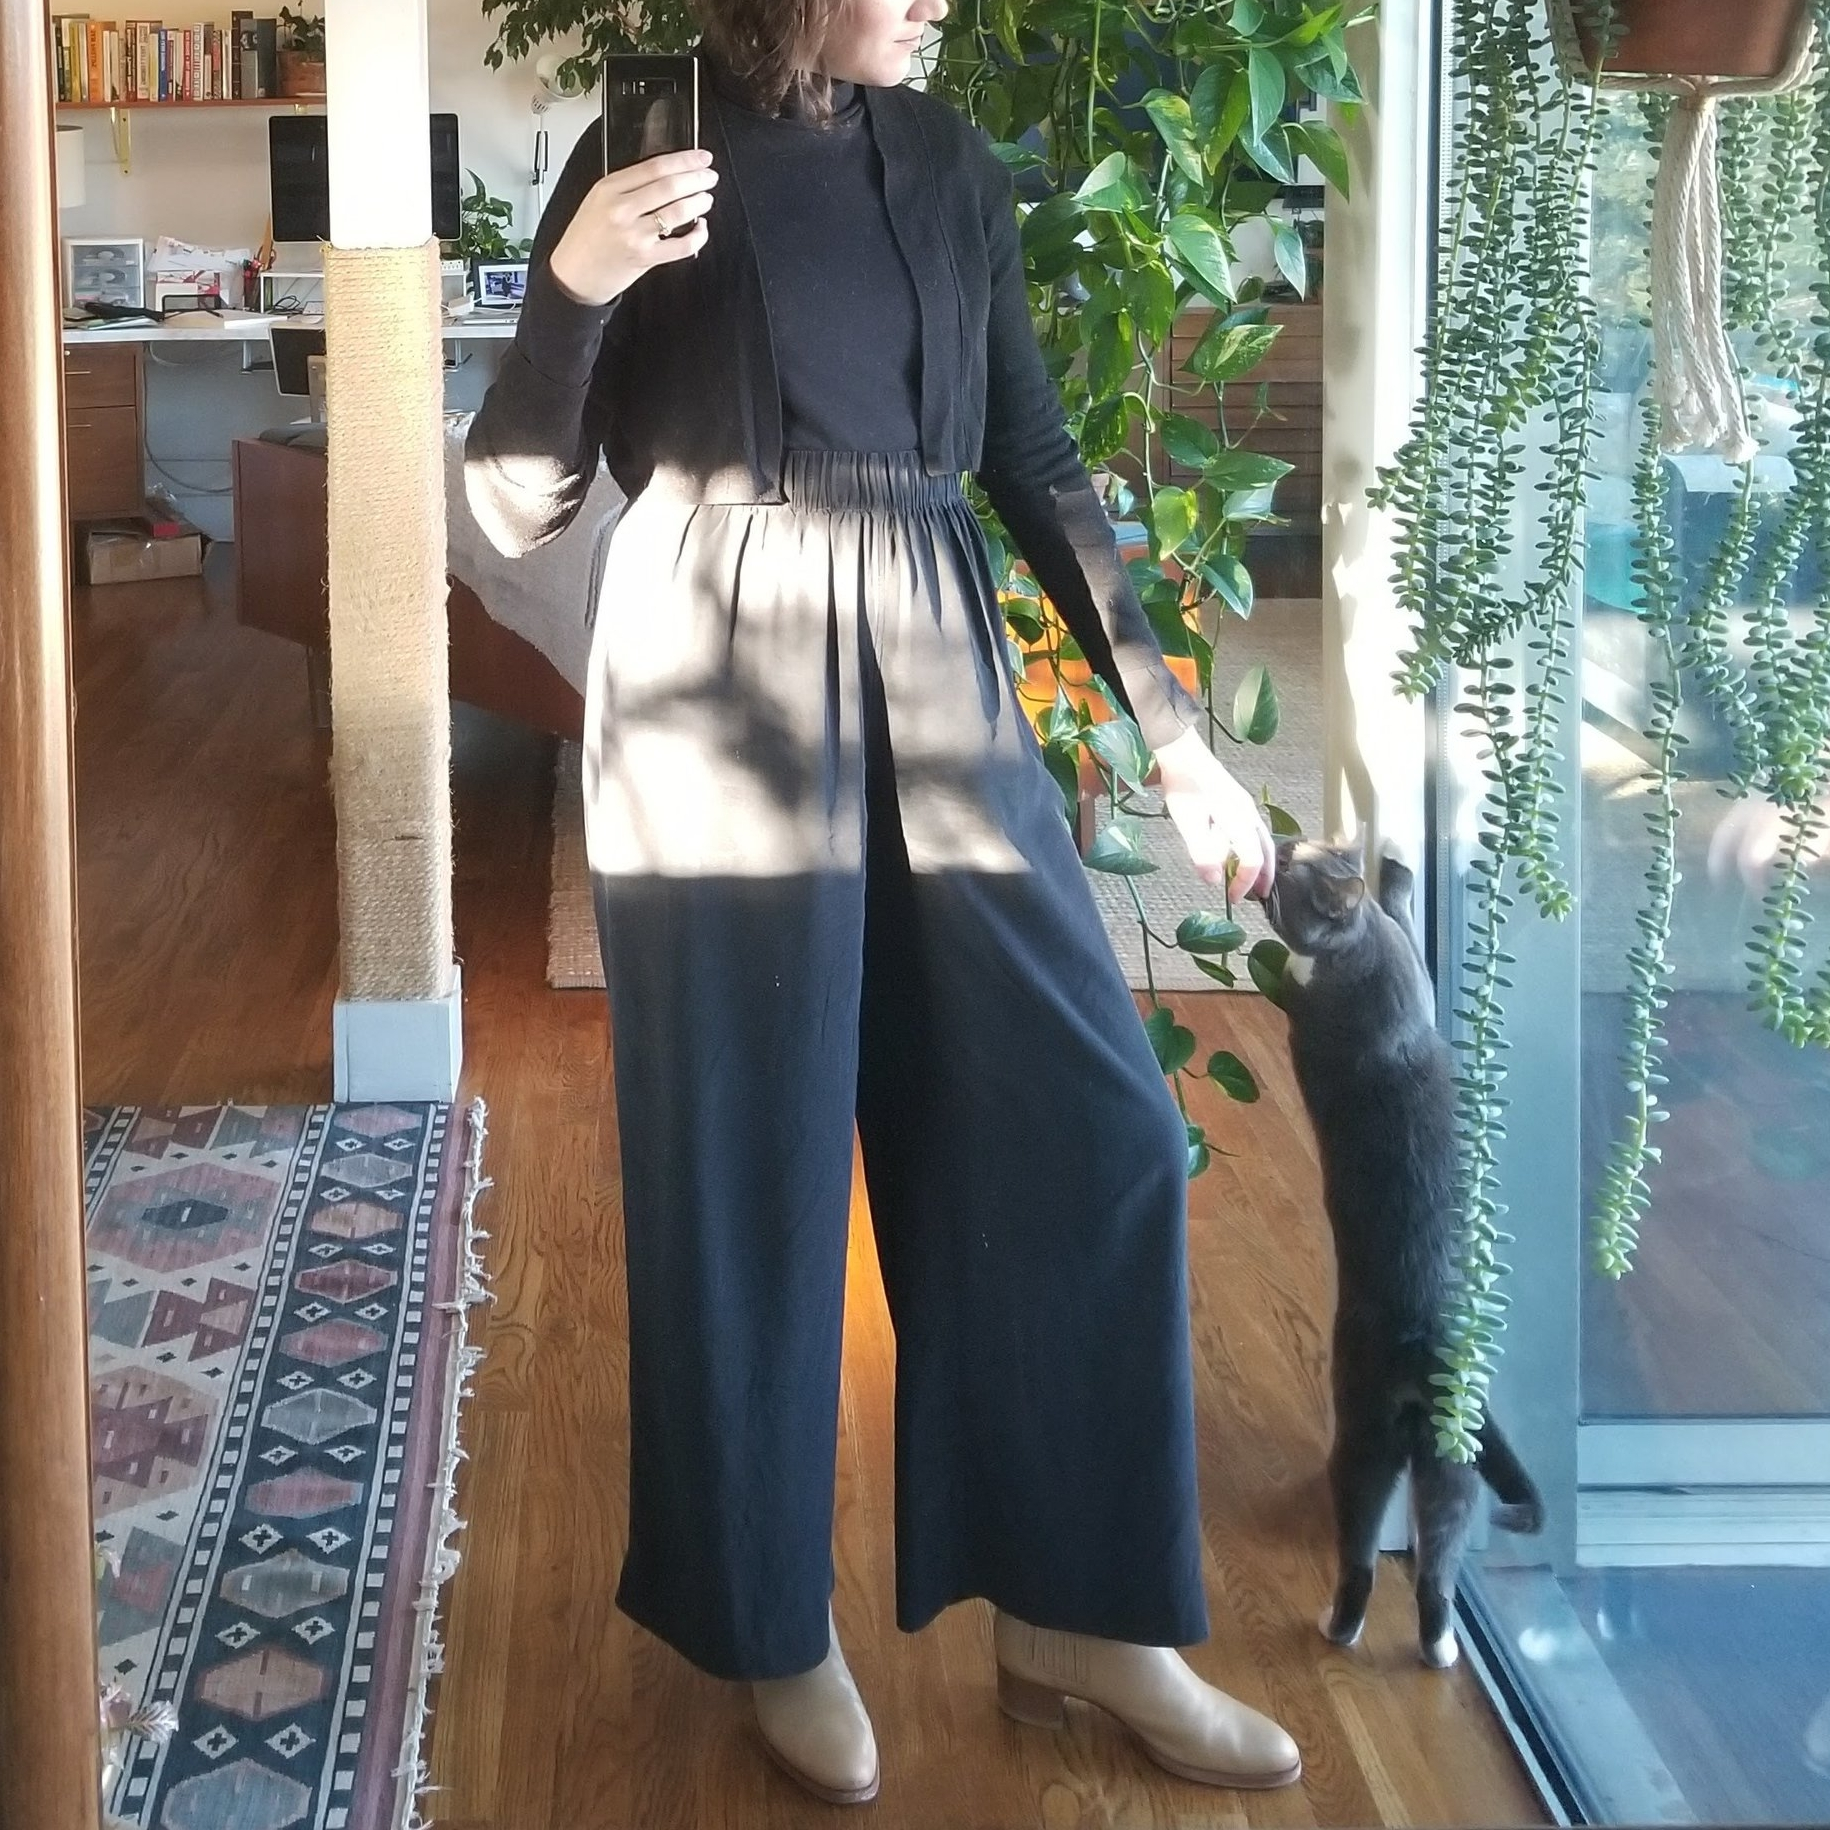 Friday - January 5, 2018For my first real day back at work in the office, I wear what I will now dub the Power Outfit — Elizabeth Suzann florences and Kotn turtleneck. I feel invigorated on my 3/4 mile walk to the train in 22 degree weather. I wear not one but two pairs of long johns below the silk pants in addition to three layers on top. An OK day back to work.